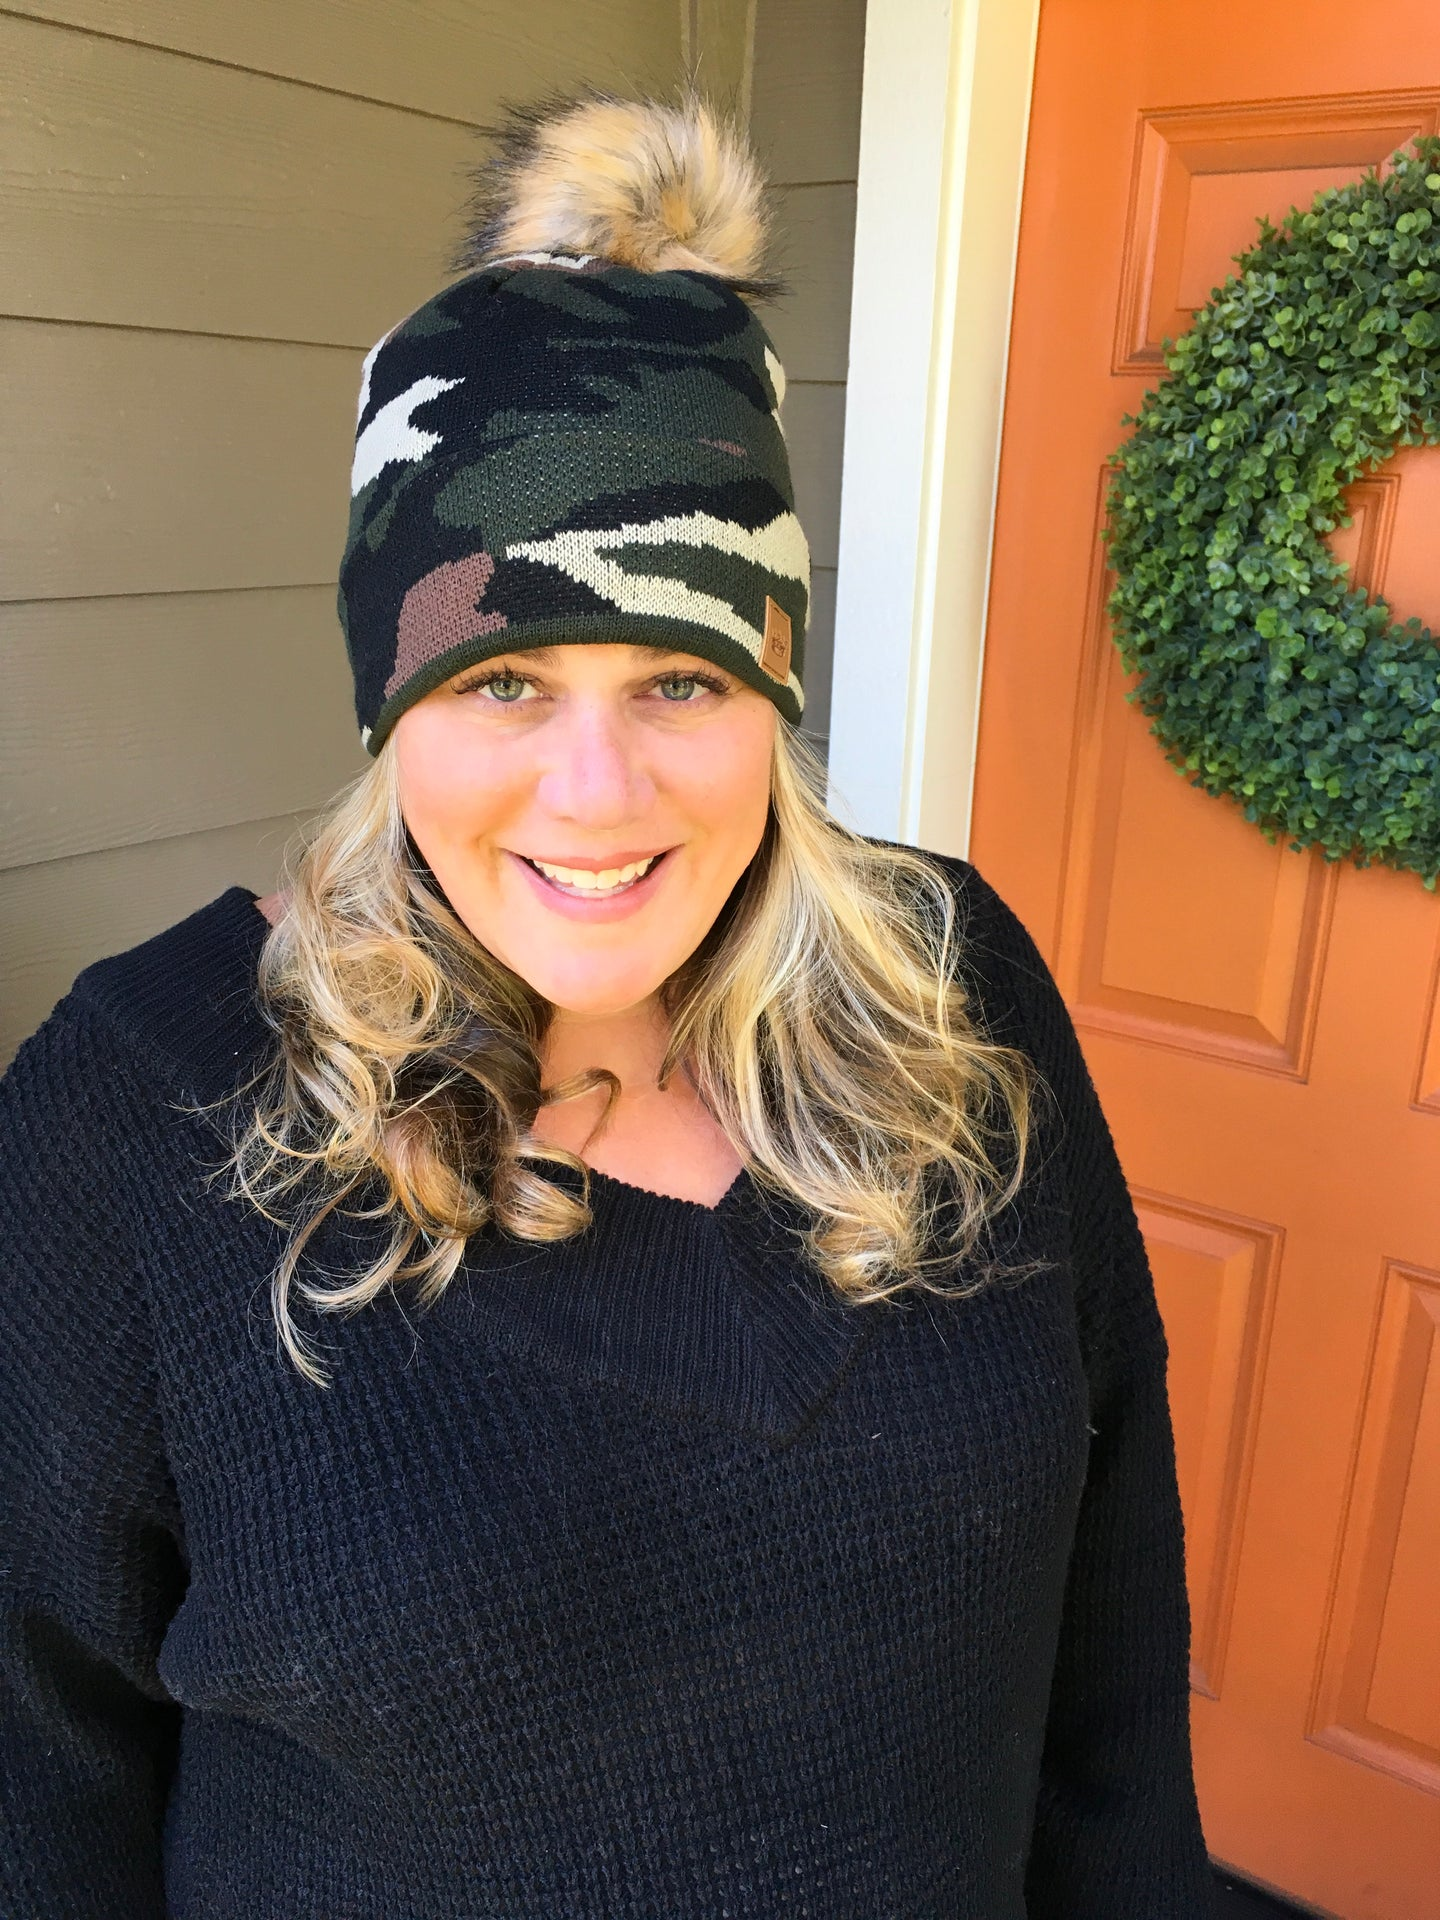 Camo Stocking Hat with Pom Pom Top